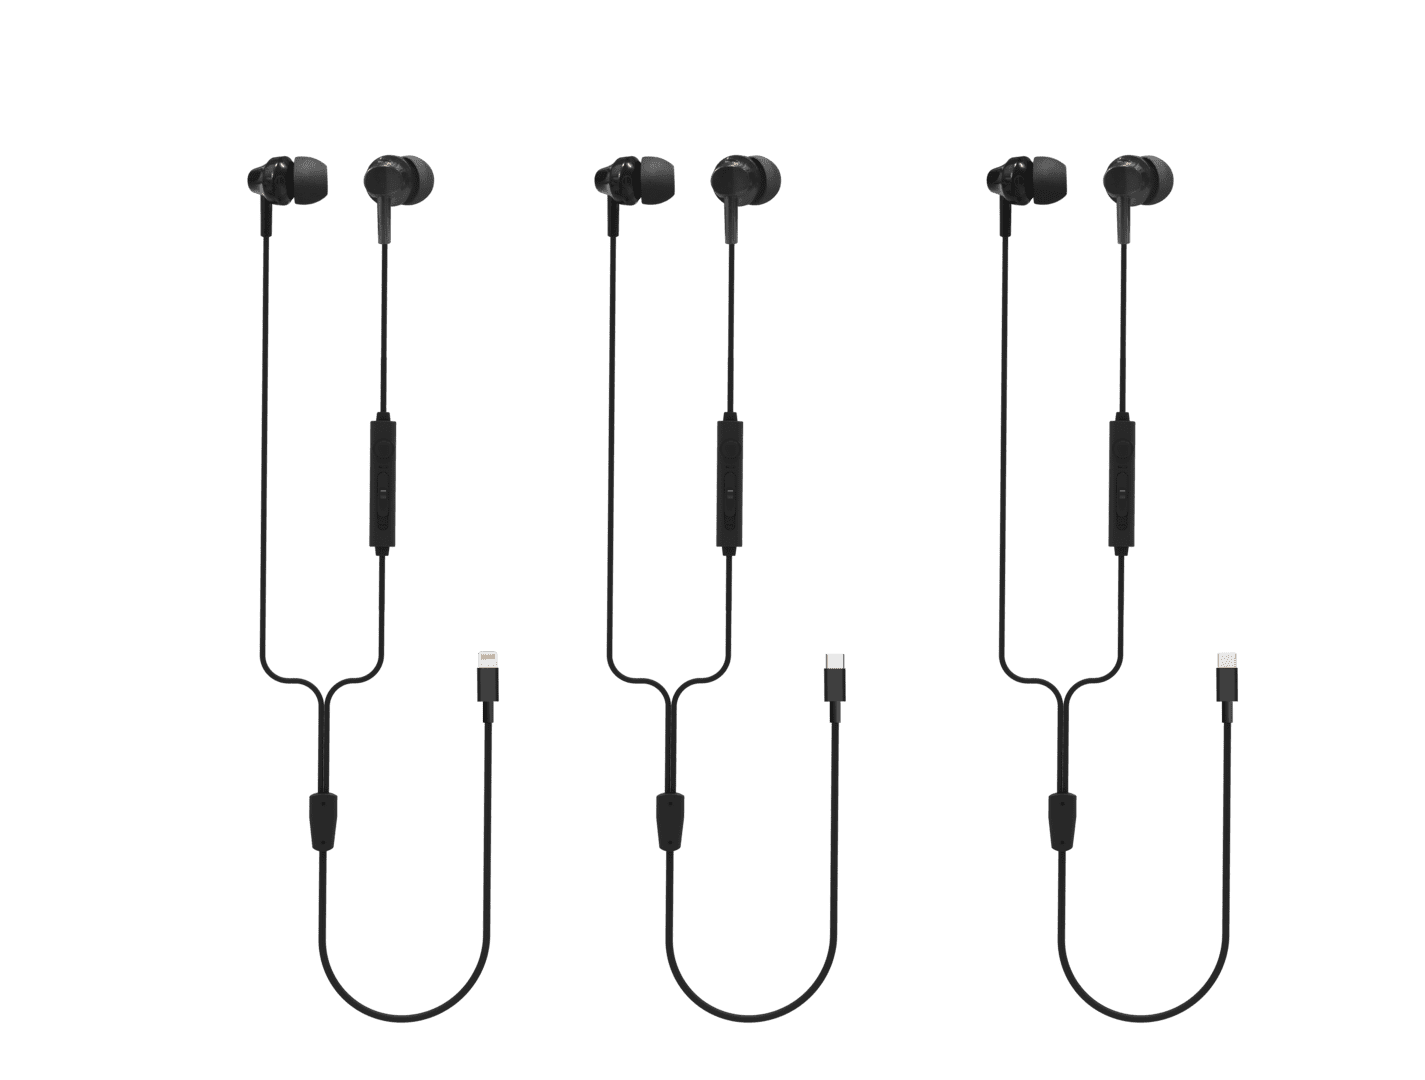 Hot Selling for iPhone Phone Headset Earphone 8Pin Mic Good Sound Playing Wired 8Pin Headset Earphone for iPhone